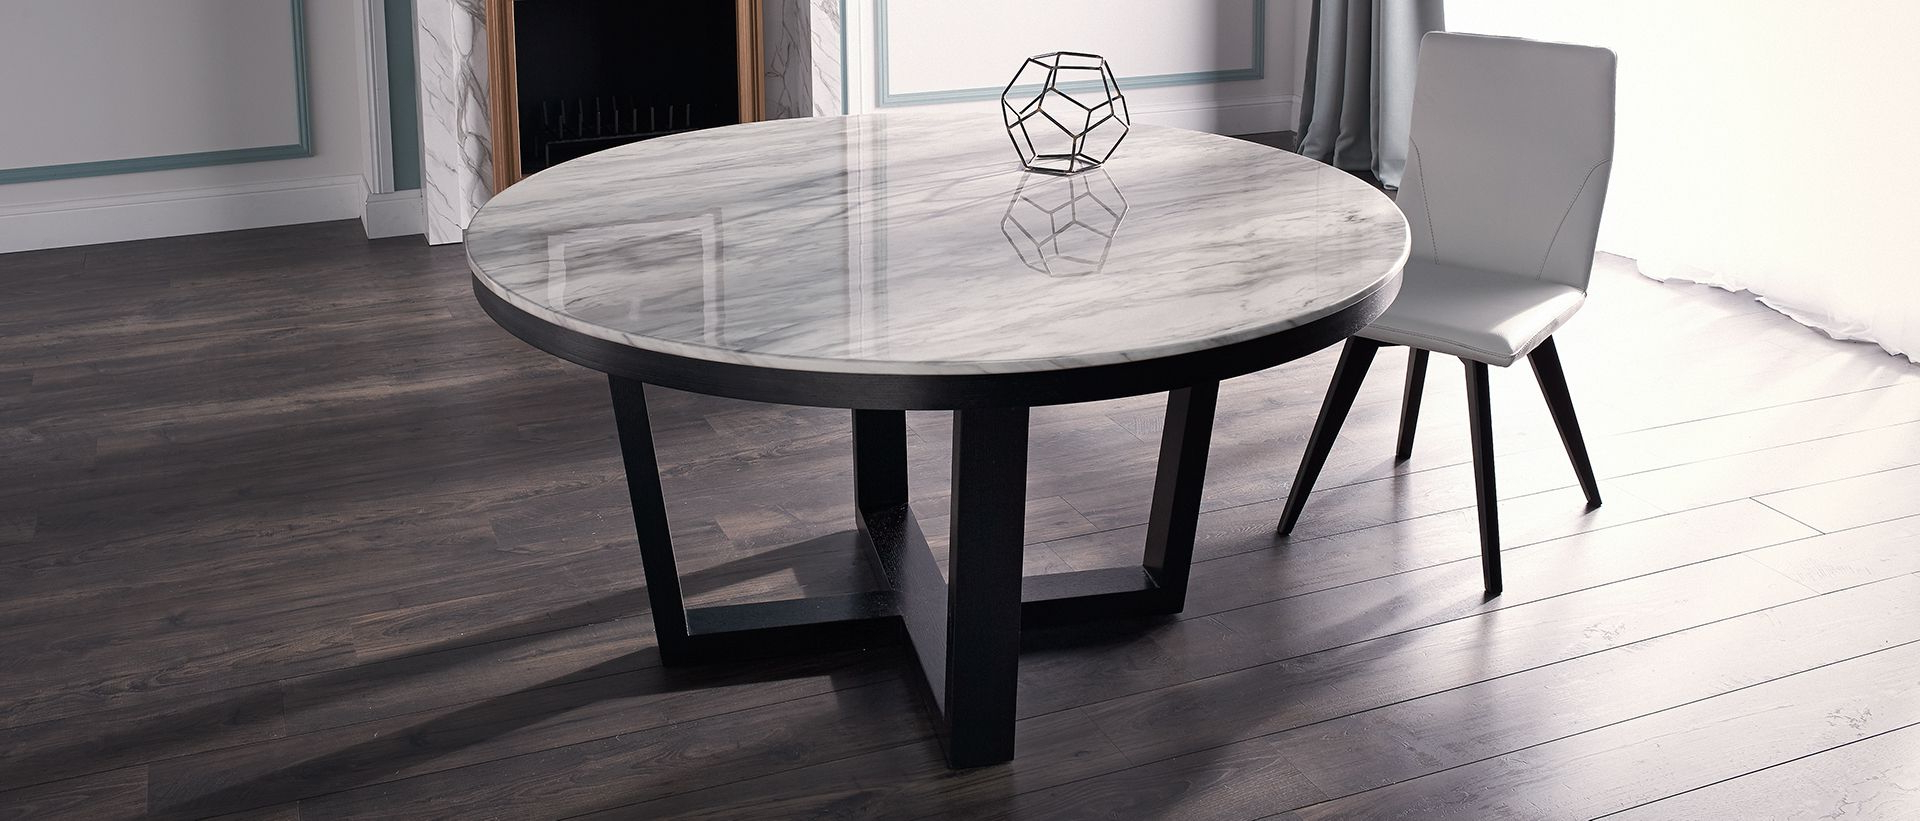 Thick White Marble Slab Dining Tables With Weathered Grey Finish Within Most Up To Date Dining Tables (View 23 of 25)